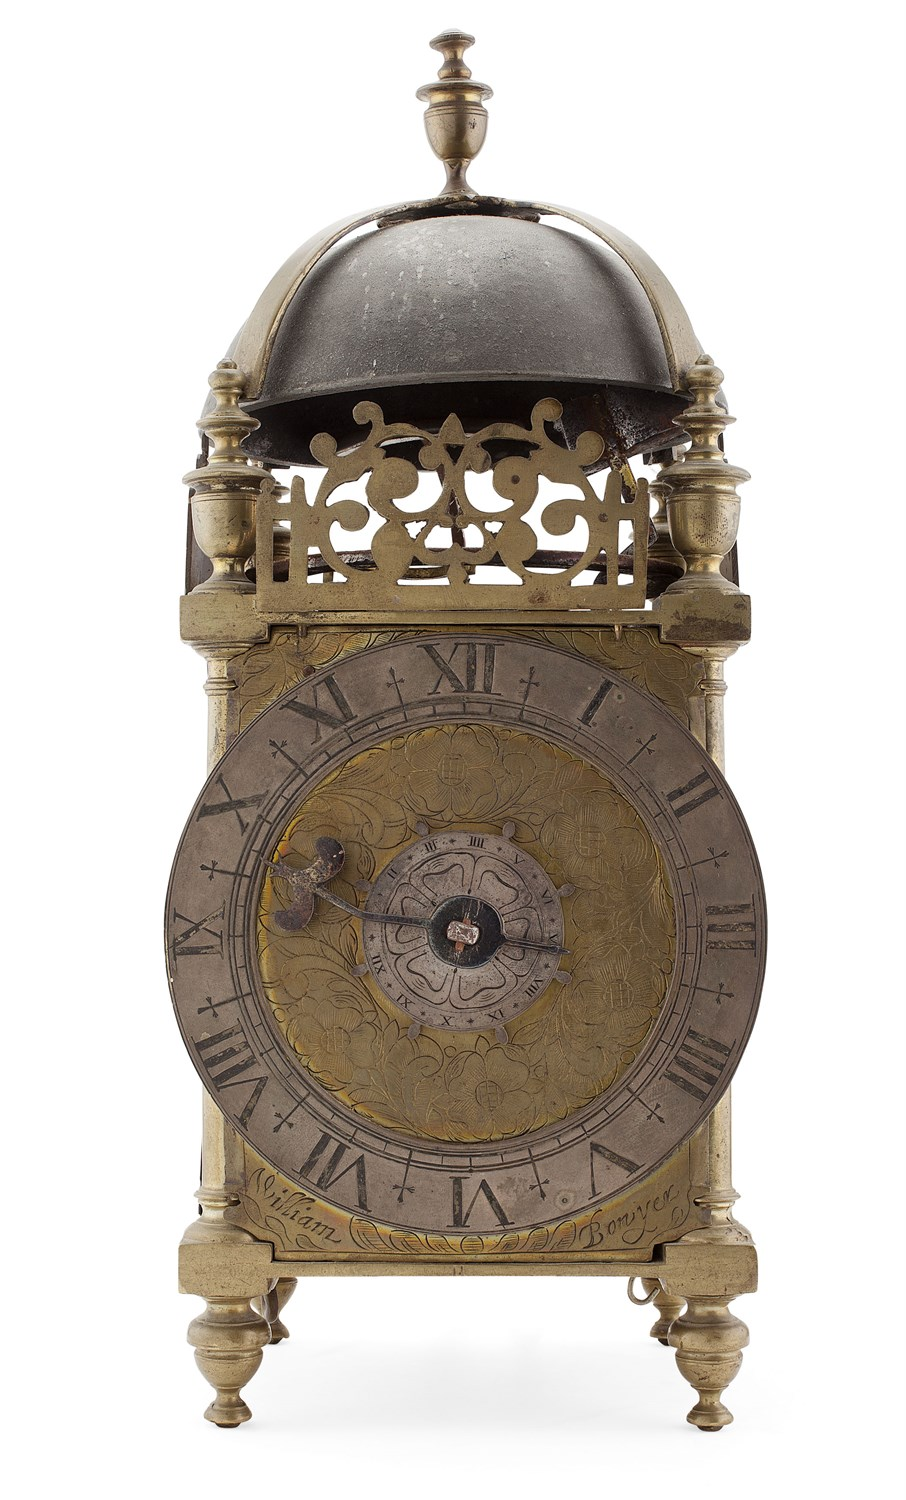 46 - EARLY BRASS LANTERN CLOCK